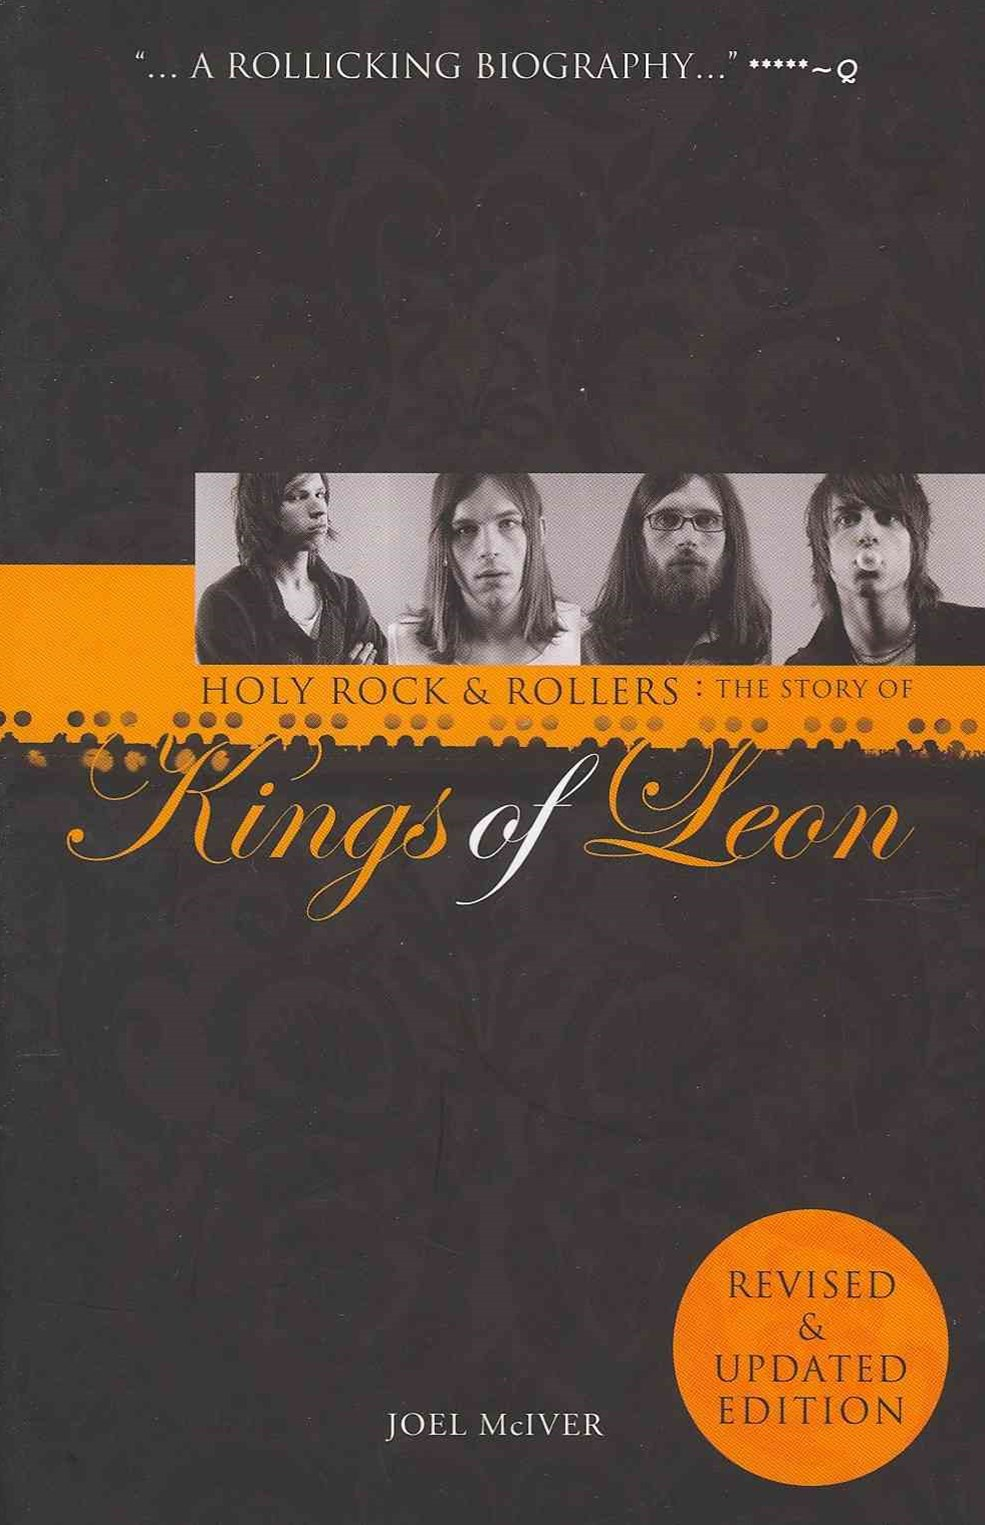 Holy Rock 'n' Rollers: The Story of the Kings of Leon